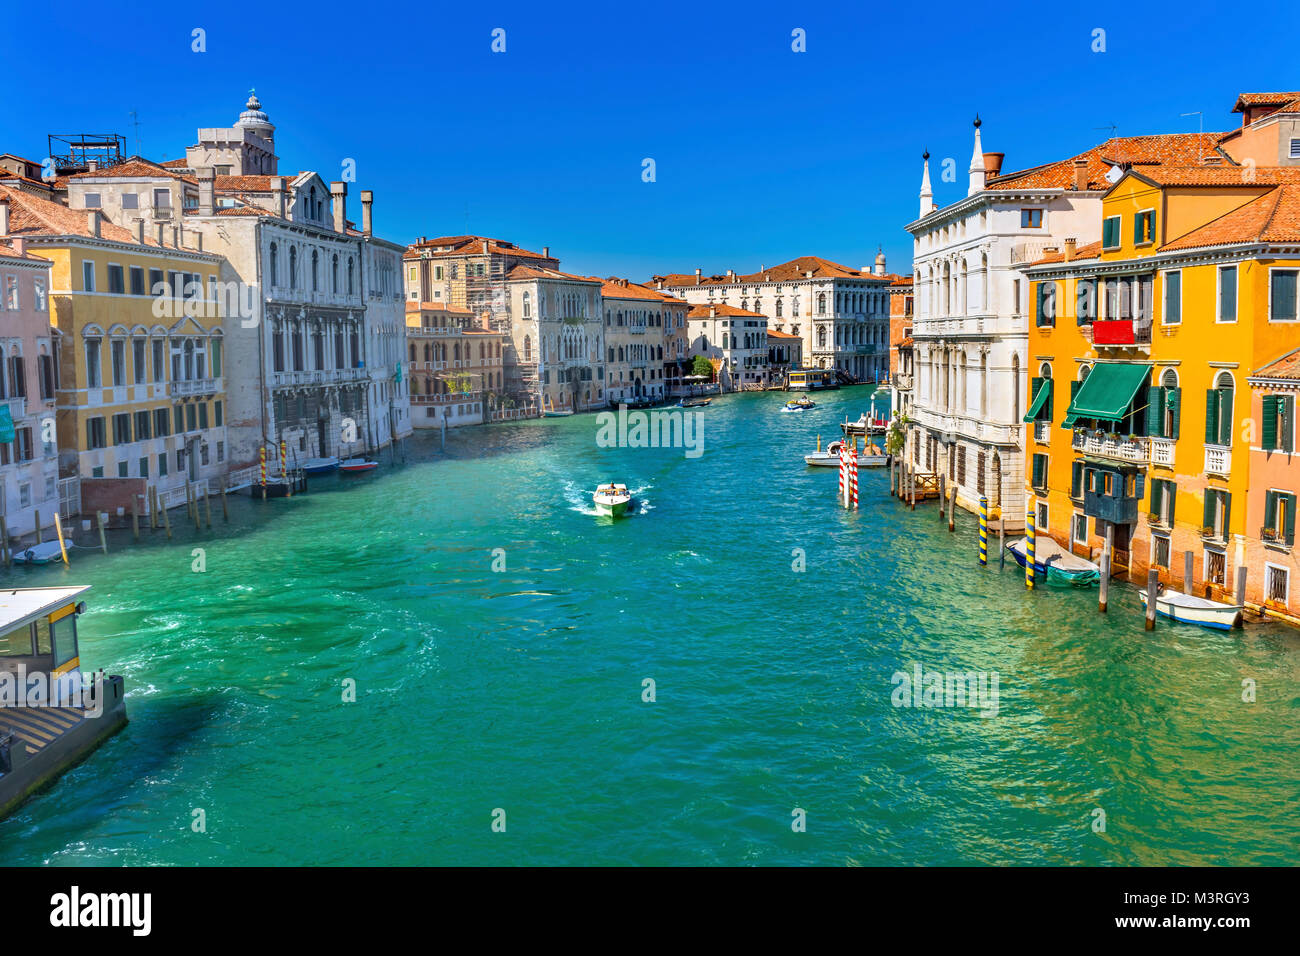 Colorful Grand Canal From Ponte Academia Bridge Buildings Ferry Boats Reflections Venice Italy - Stock Image